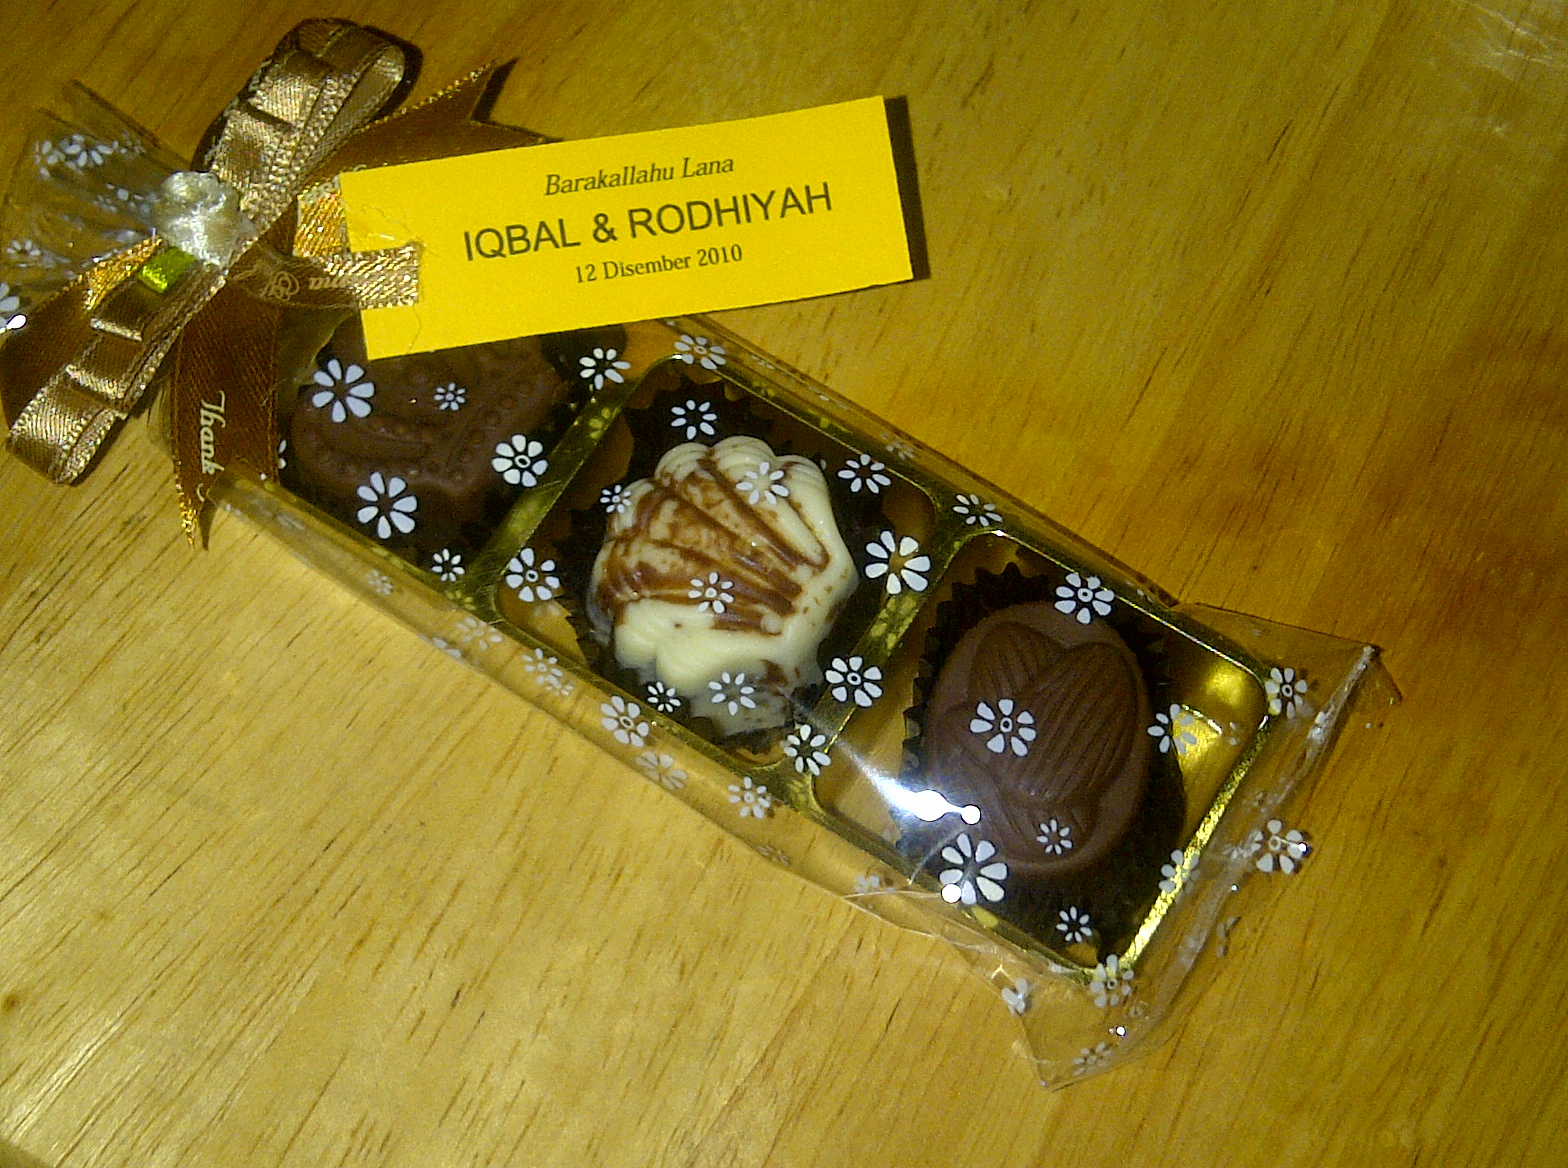 Chocolate For Wedding Door Gift : ... Delicacy: Coklat Door Gift for WeddingLocation : Bandar Baru Bangi